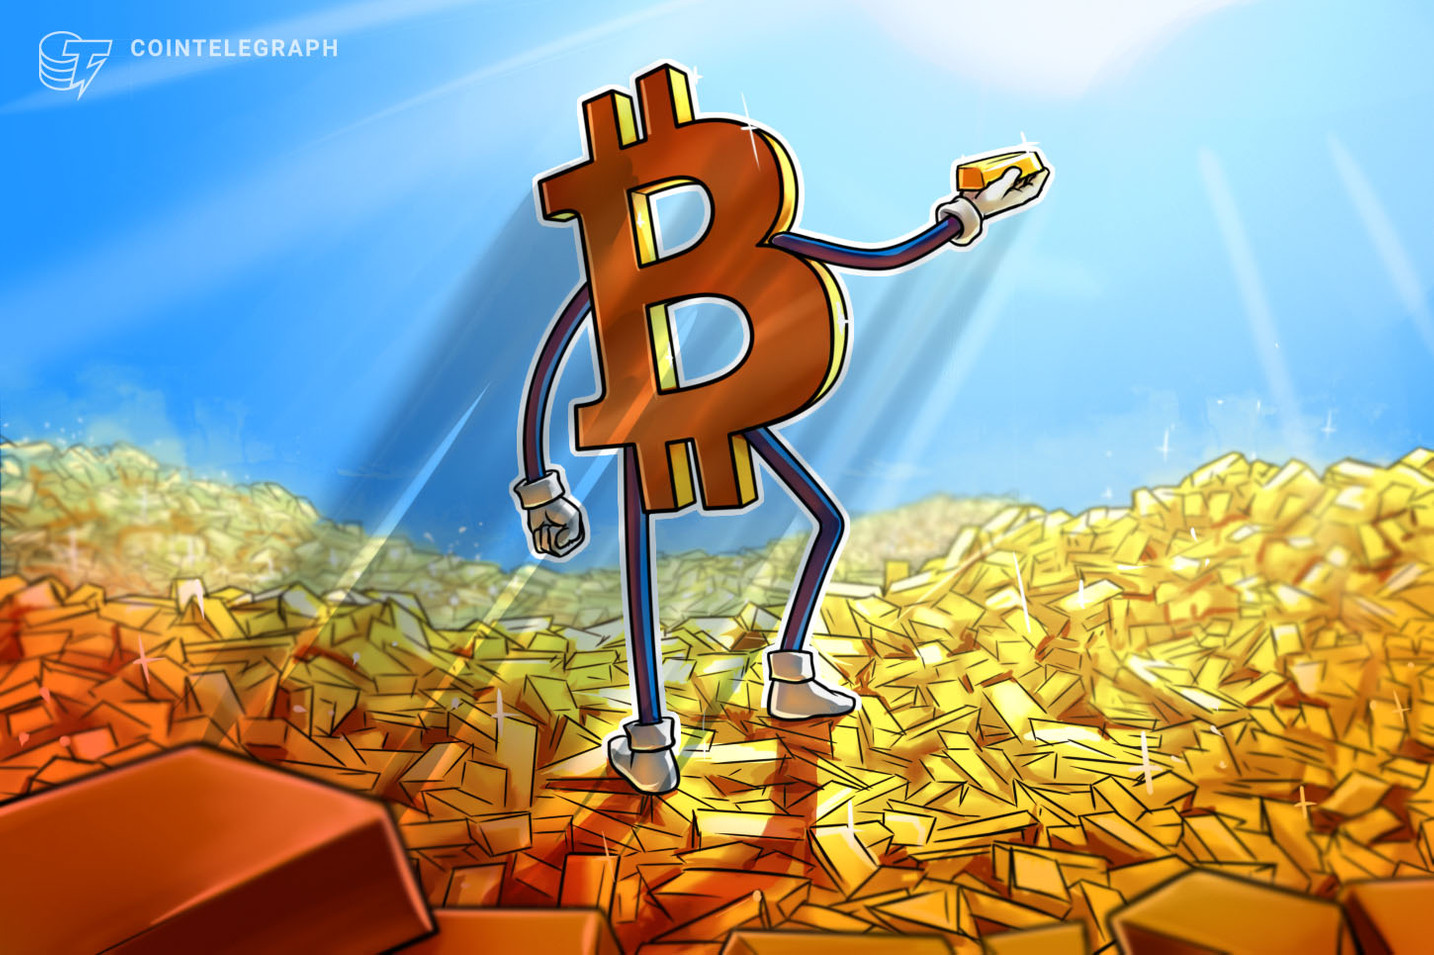 Bitcoin is living technology, and gold 'is dead,' Mark Cuban tells Peter Schiff